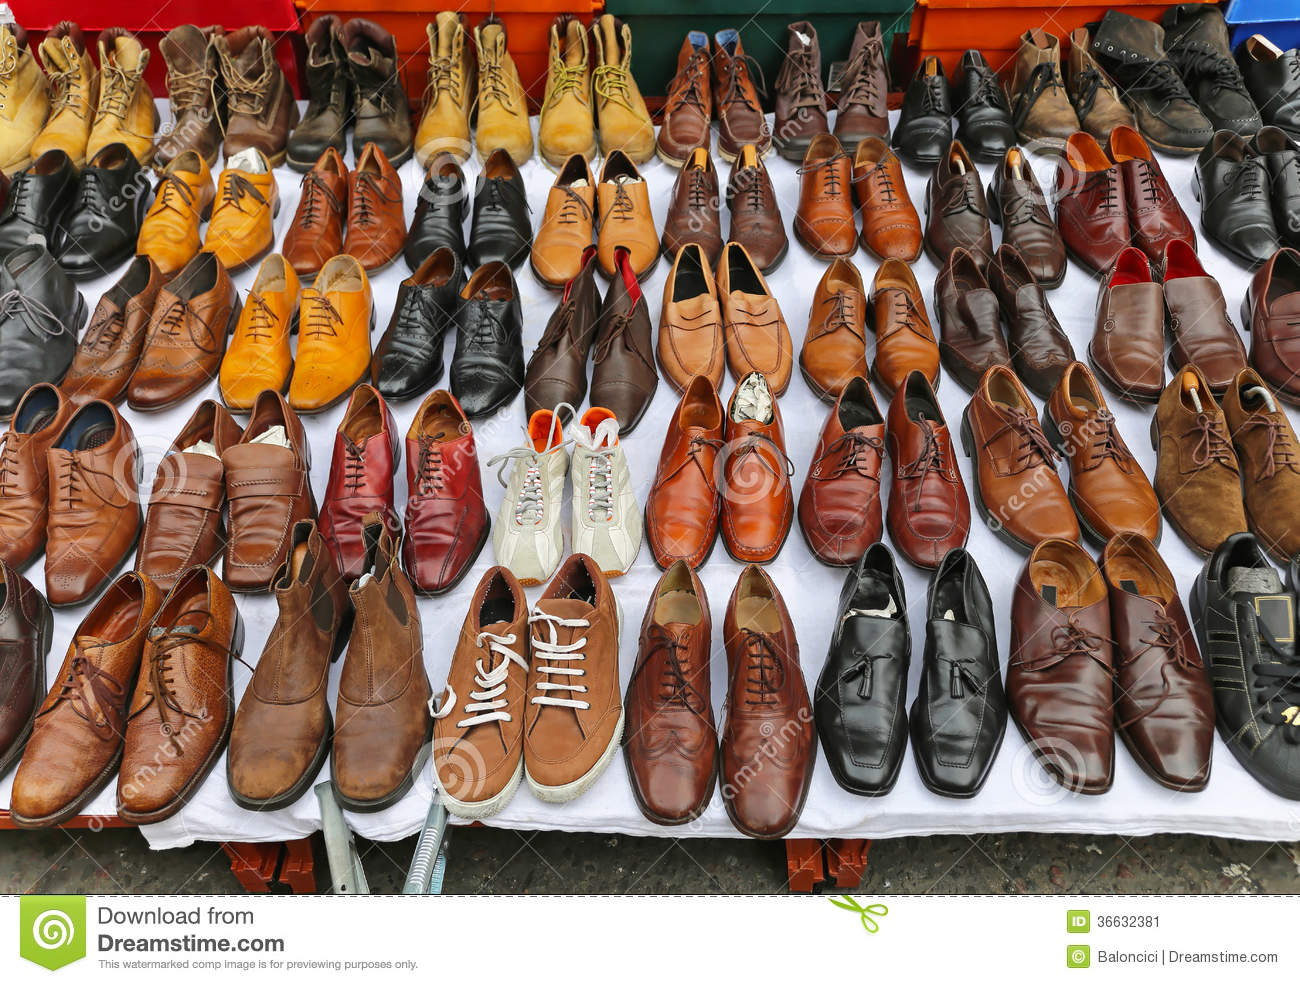 Shoes Market Stock Image - Image: 36632381